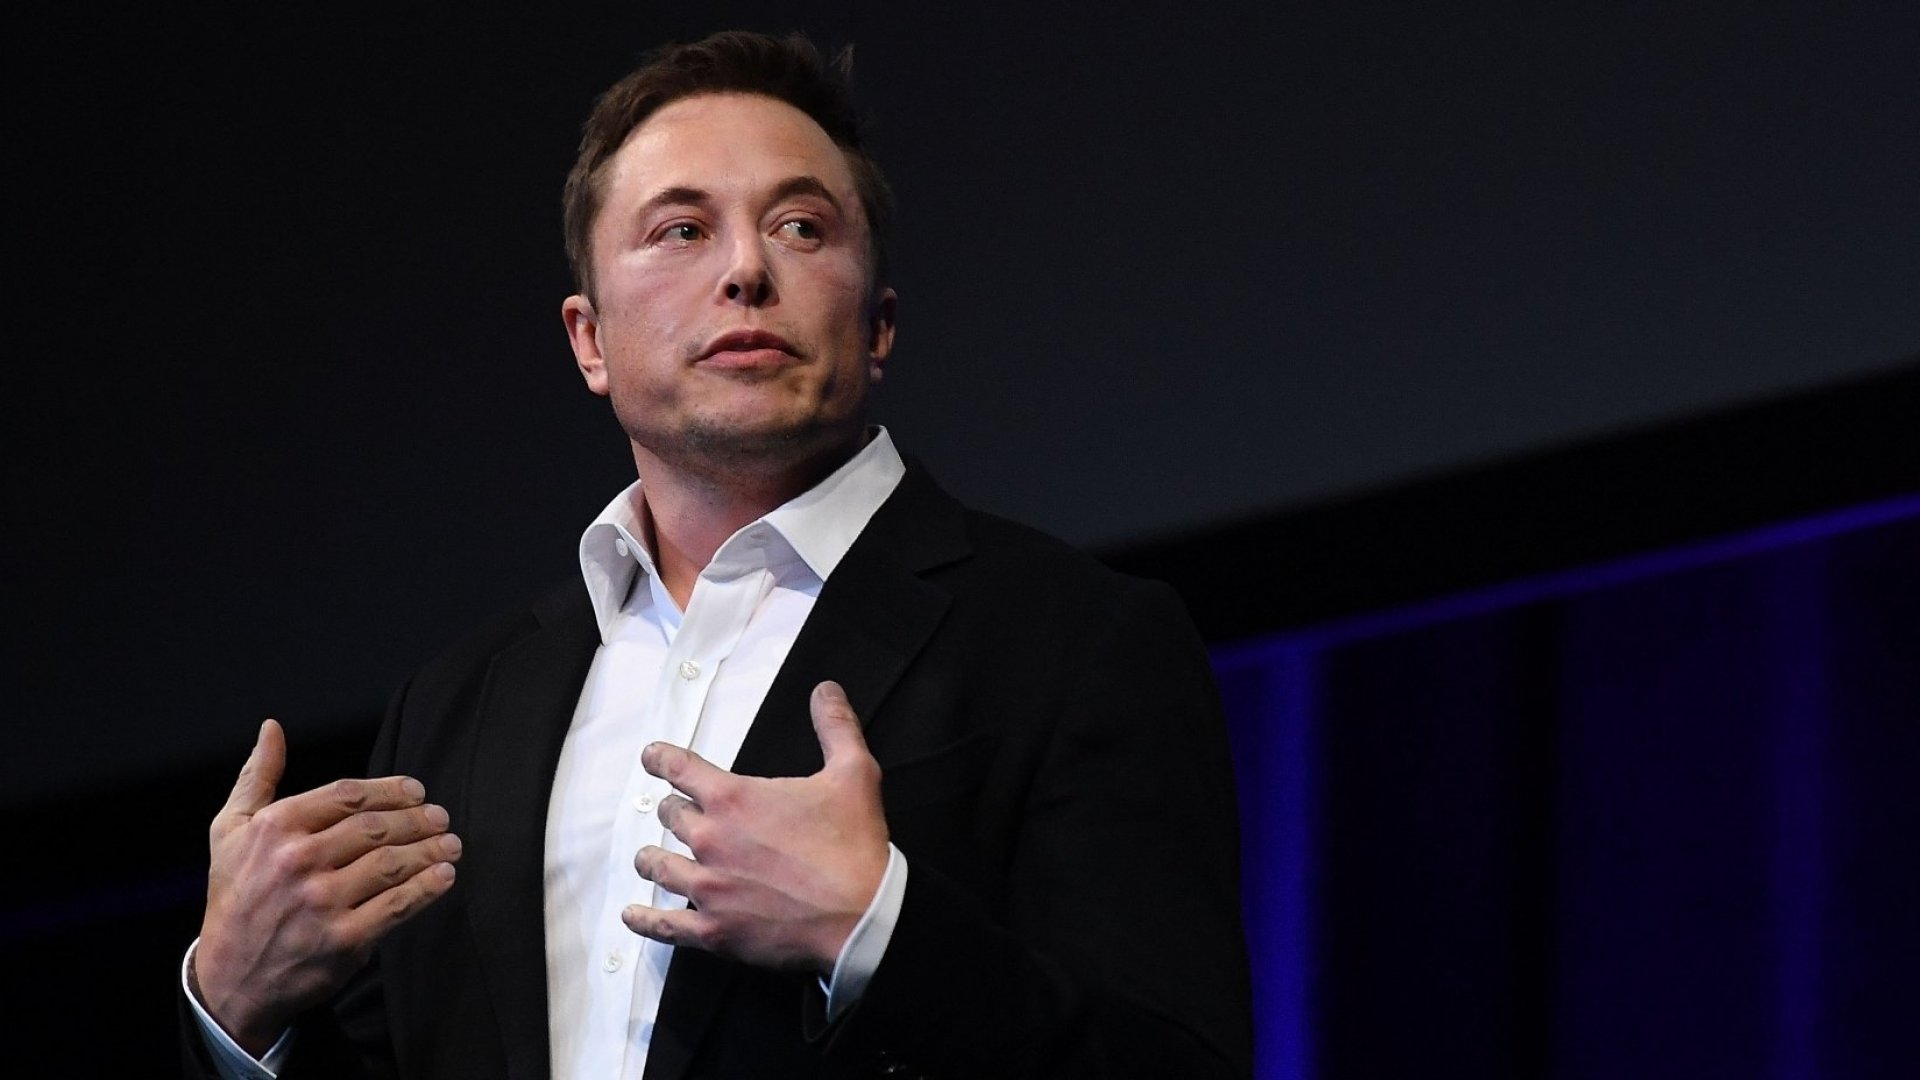 Elon Musk Says Great Leaders Focus on This 1 Thing Before Everything Else